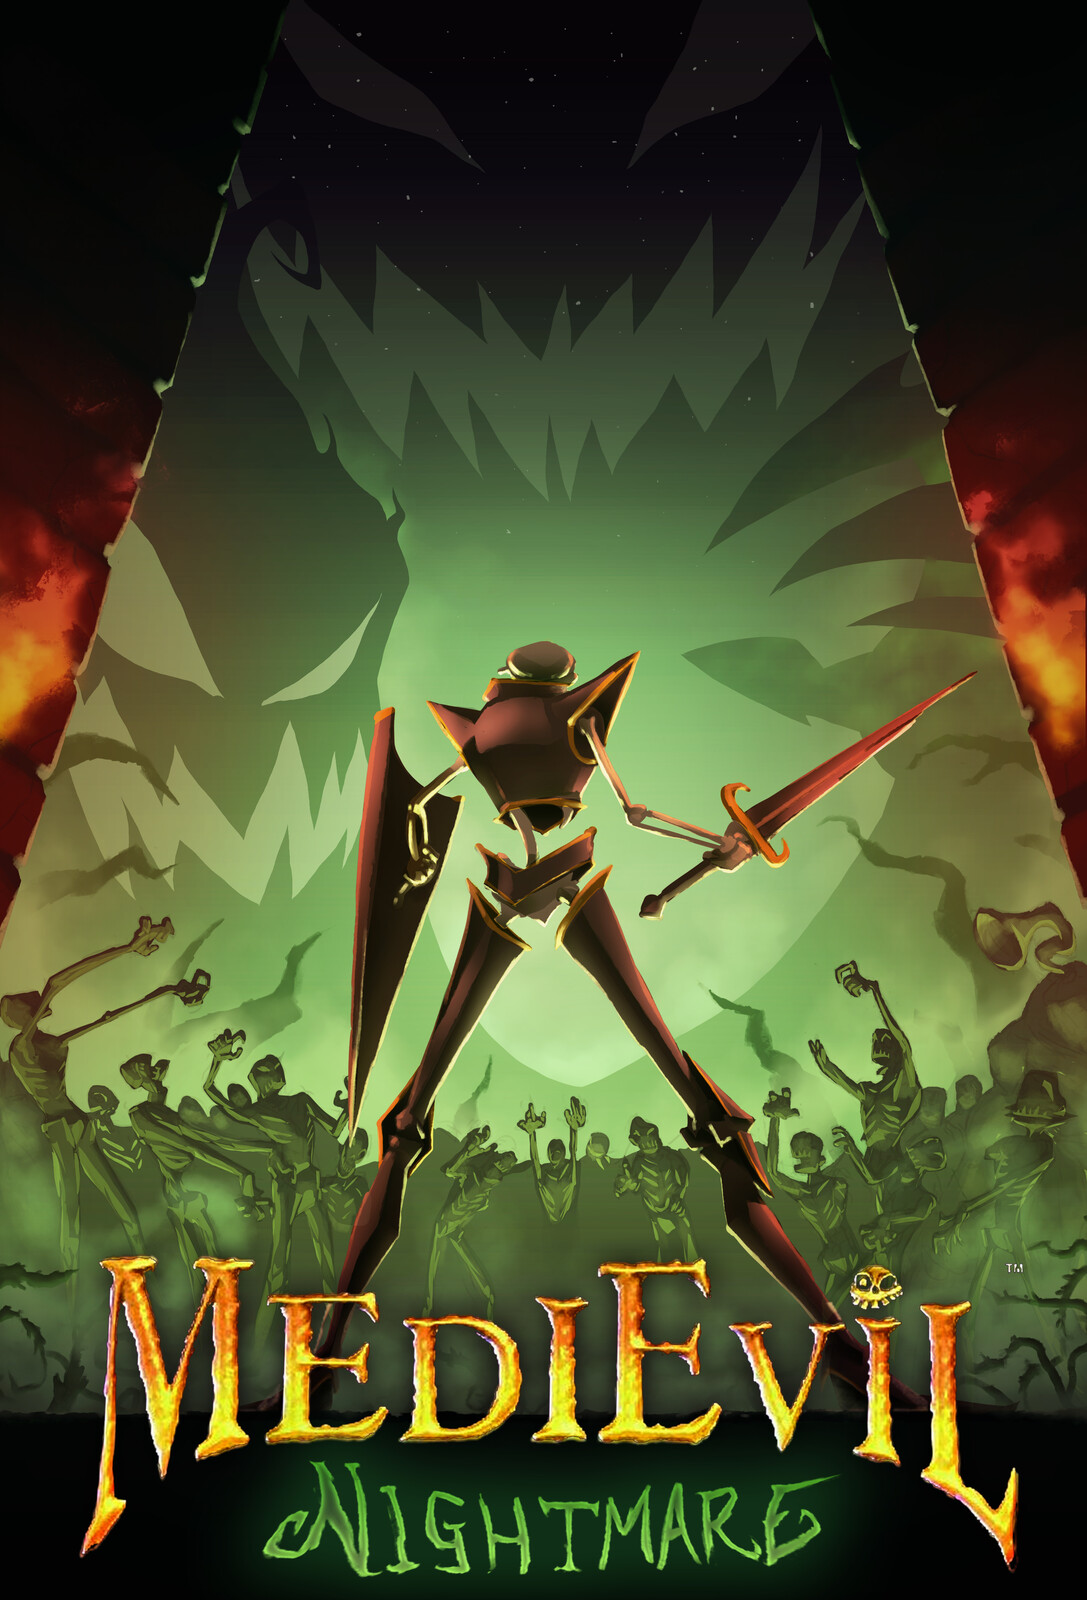 Cancelled Medievil pitch